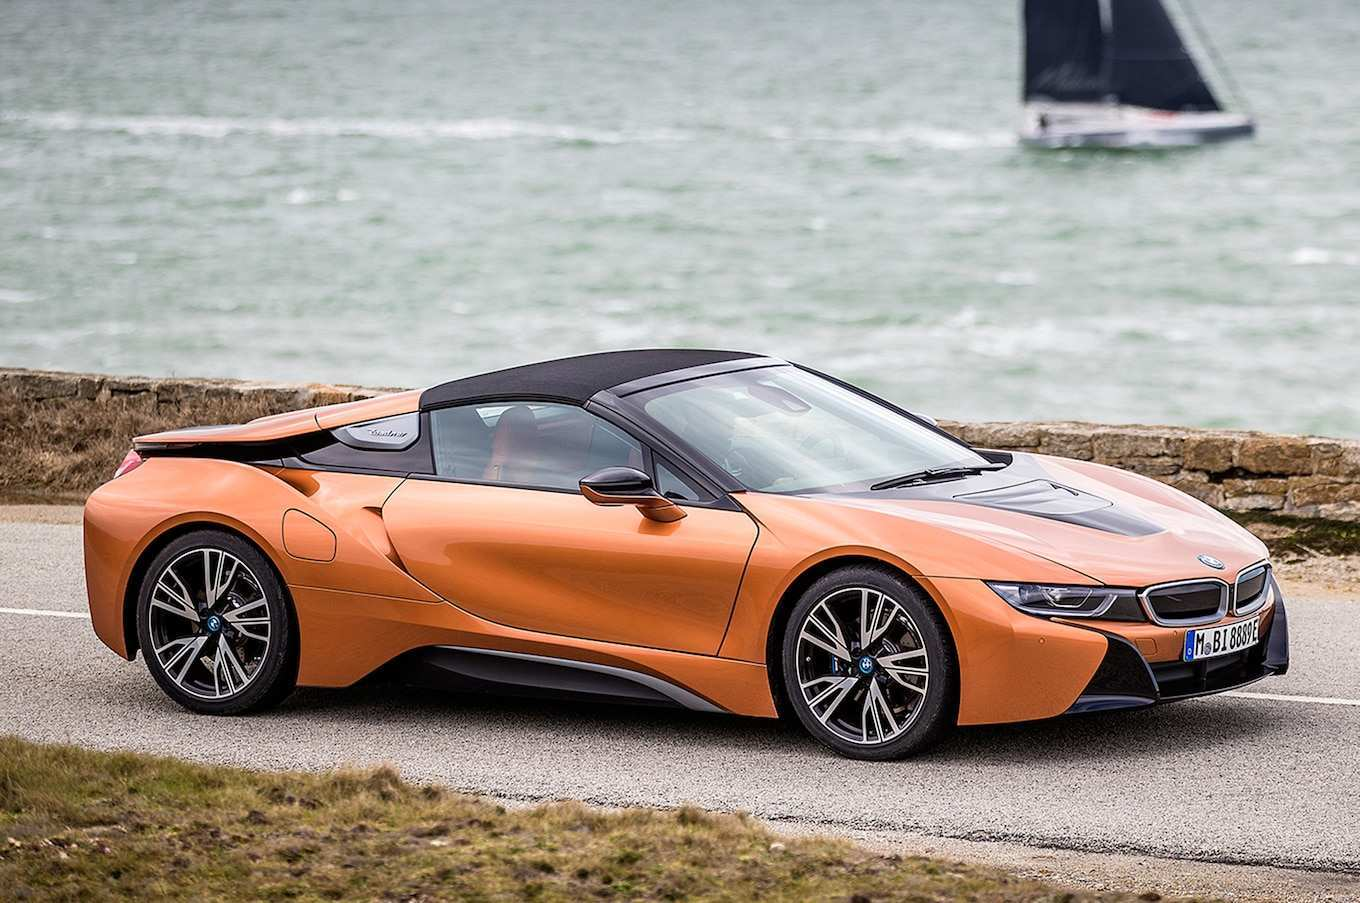 74 All New 2019 Bmw Sports Car Performance and New Engine for 2019 Bmw Sports Car